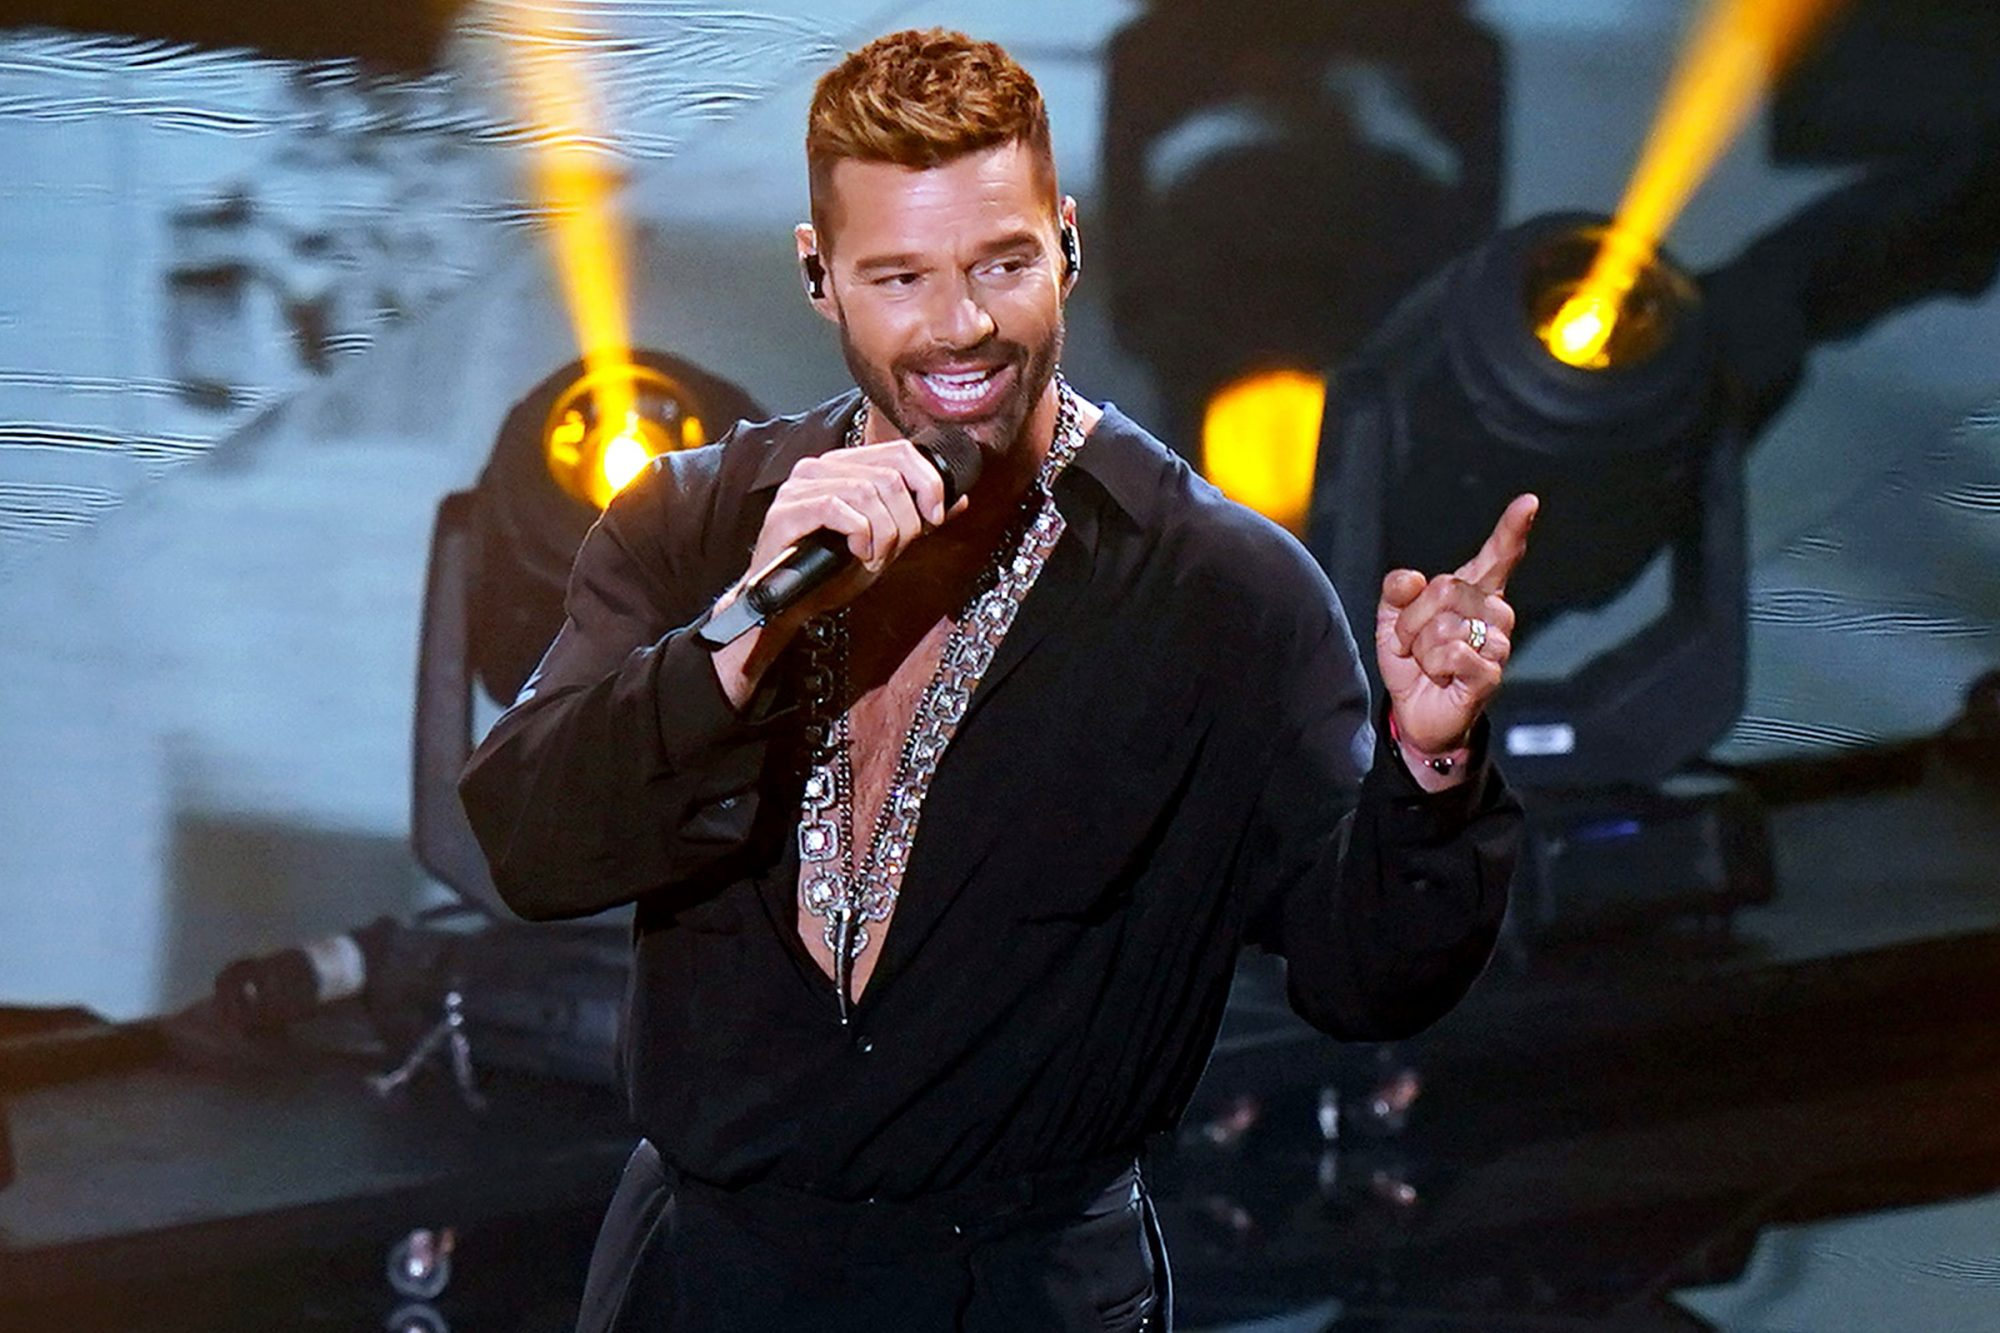 Ricky Martin performs at the 2020 Latin GRAMMY Awards on November 16, 2020 in Miami